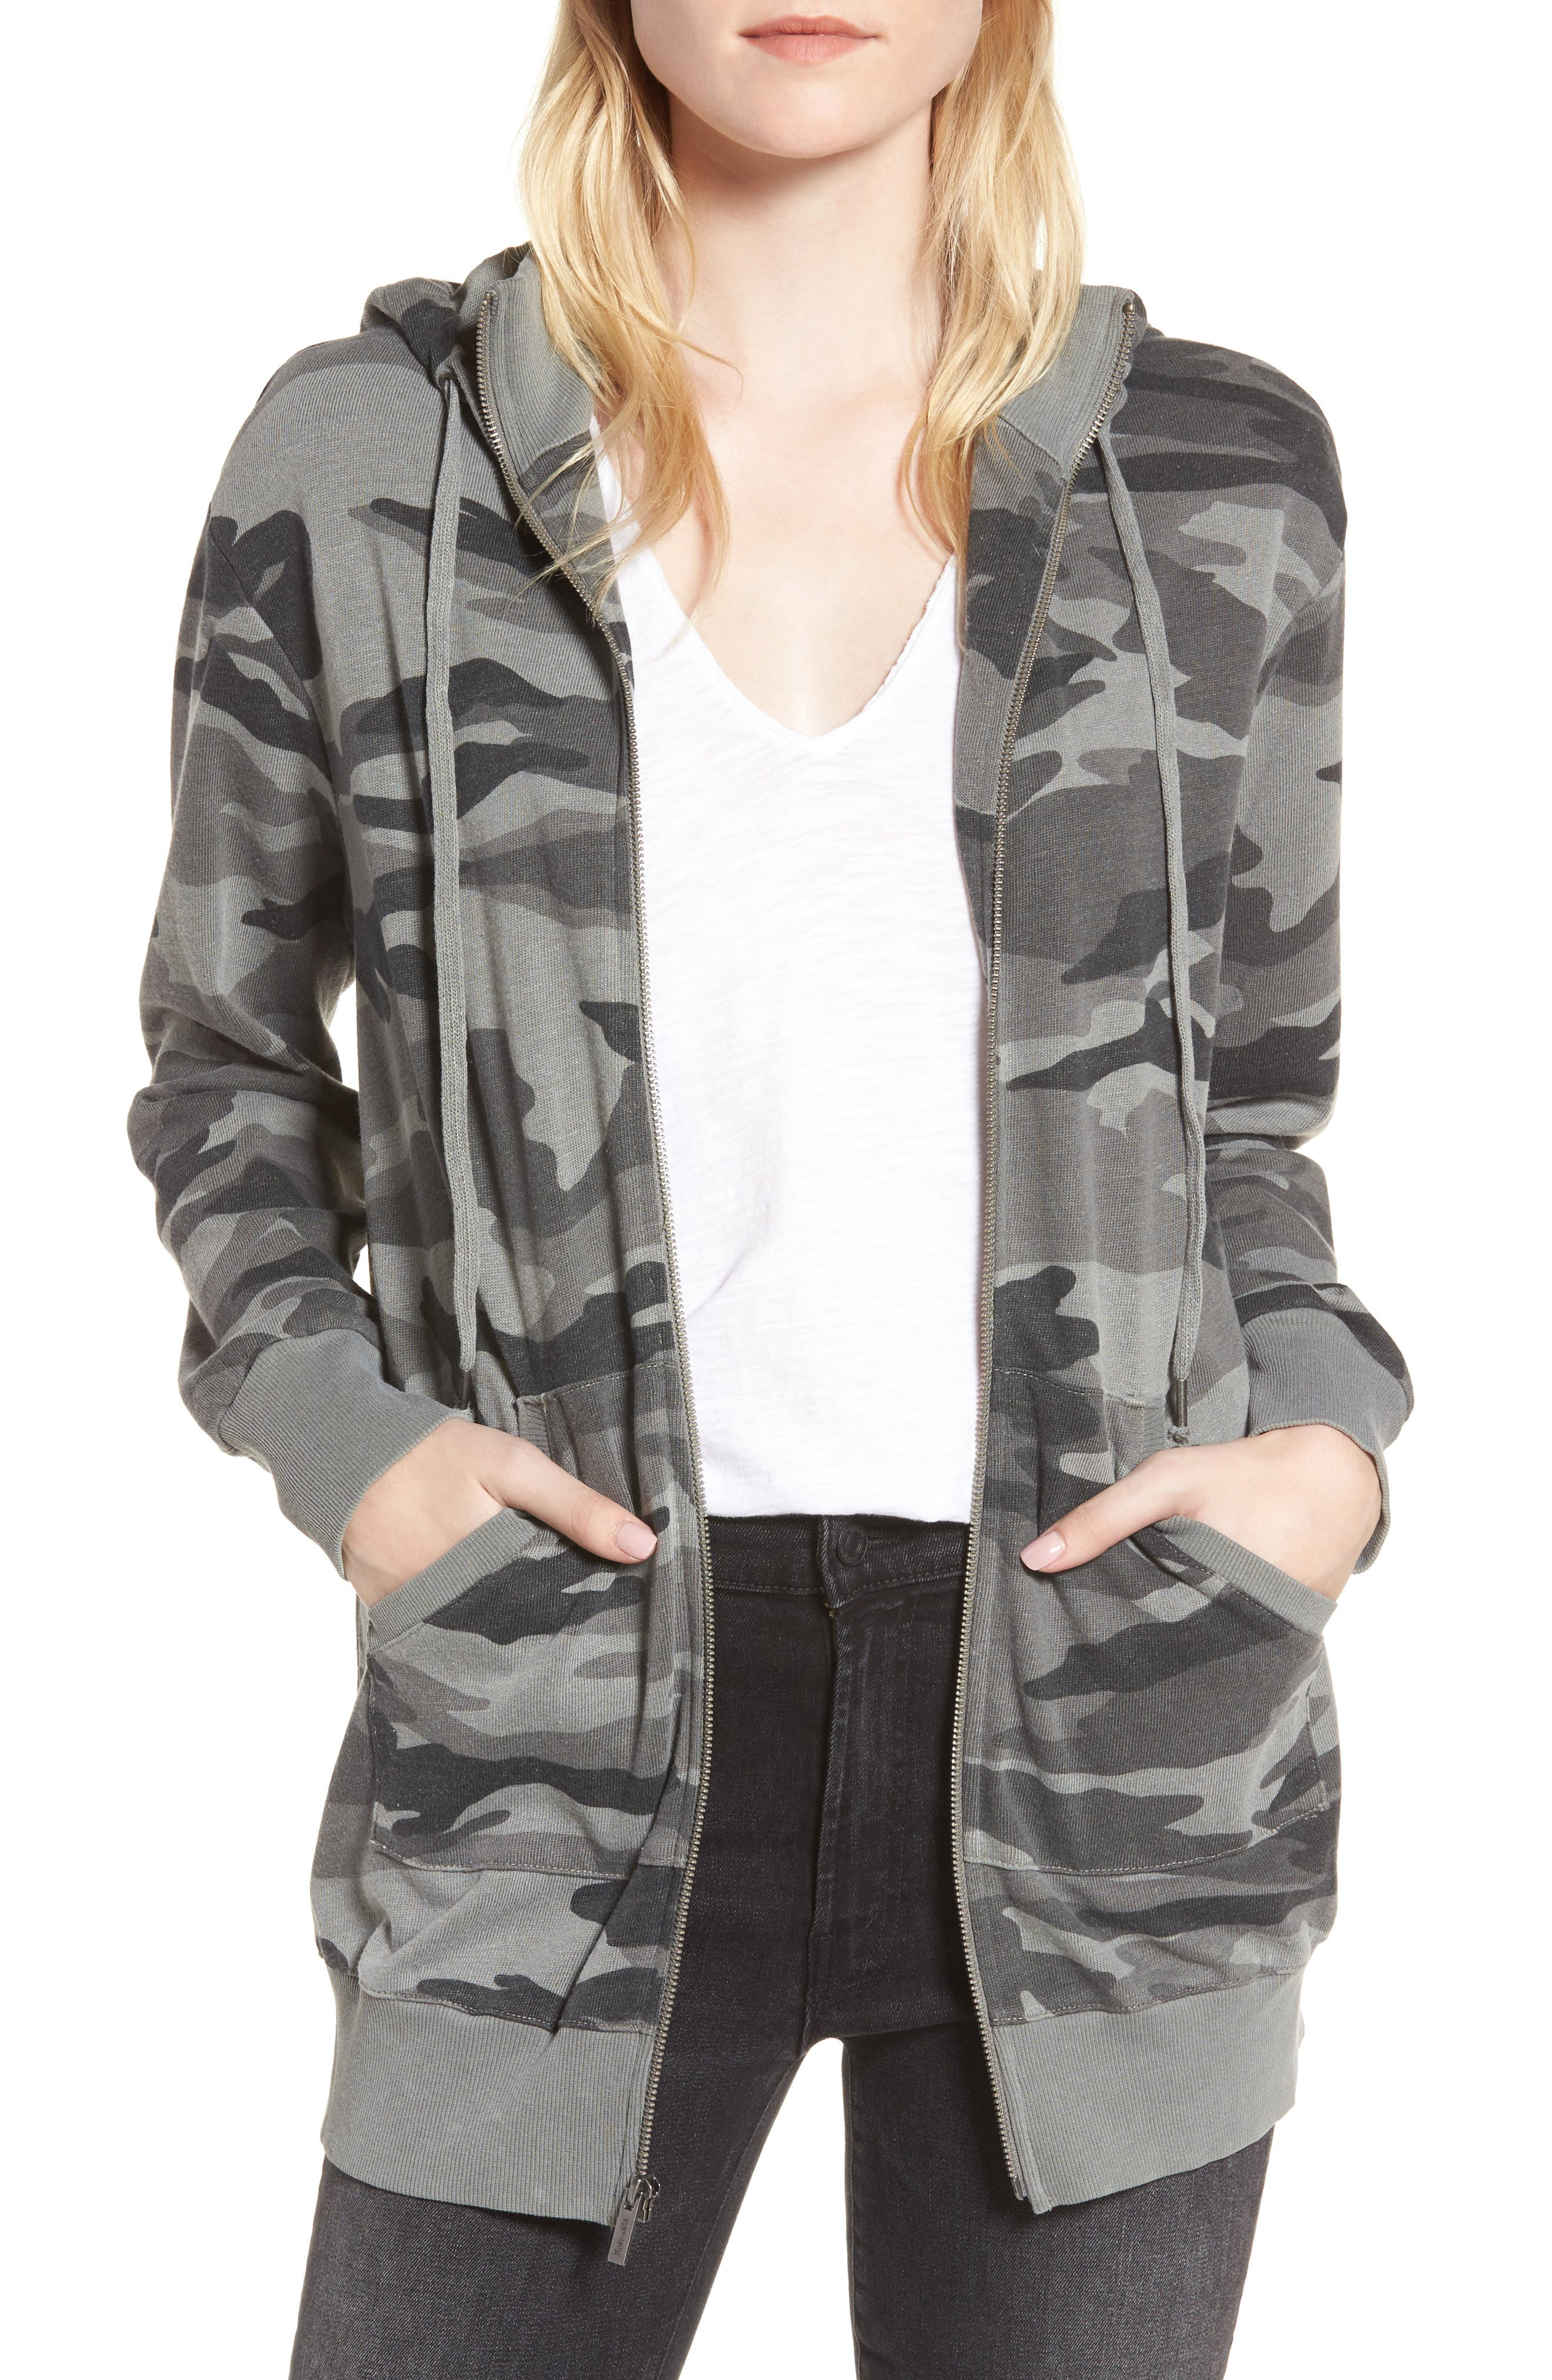 French Terry Camo Sweatshirt,                             Main thumbnail 1, color,                             301